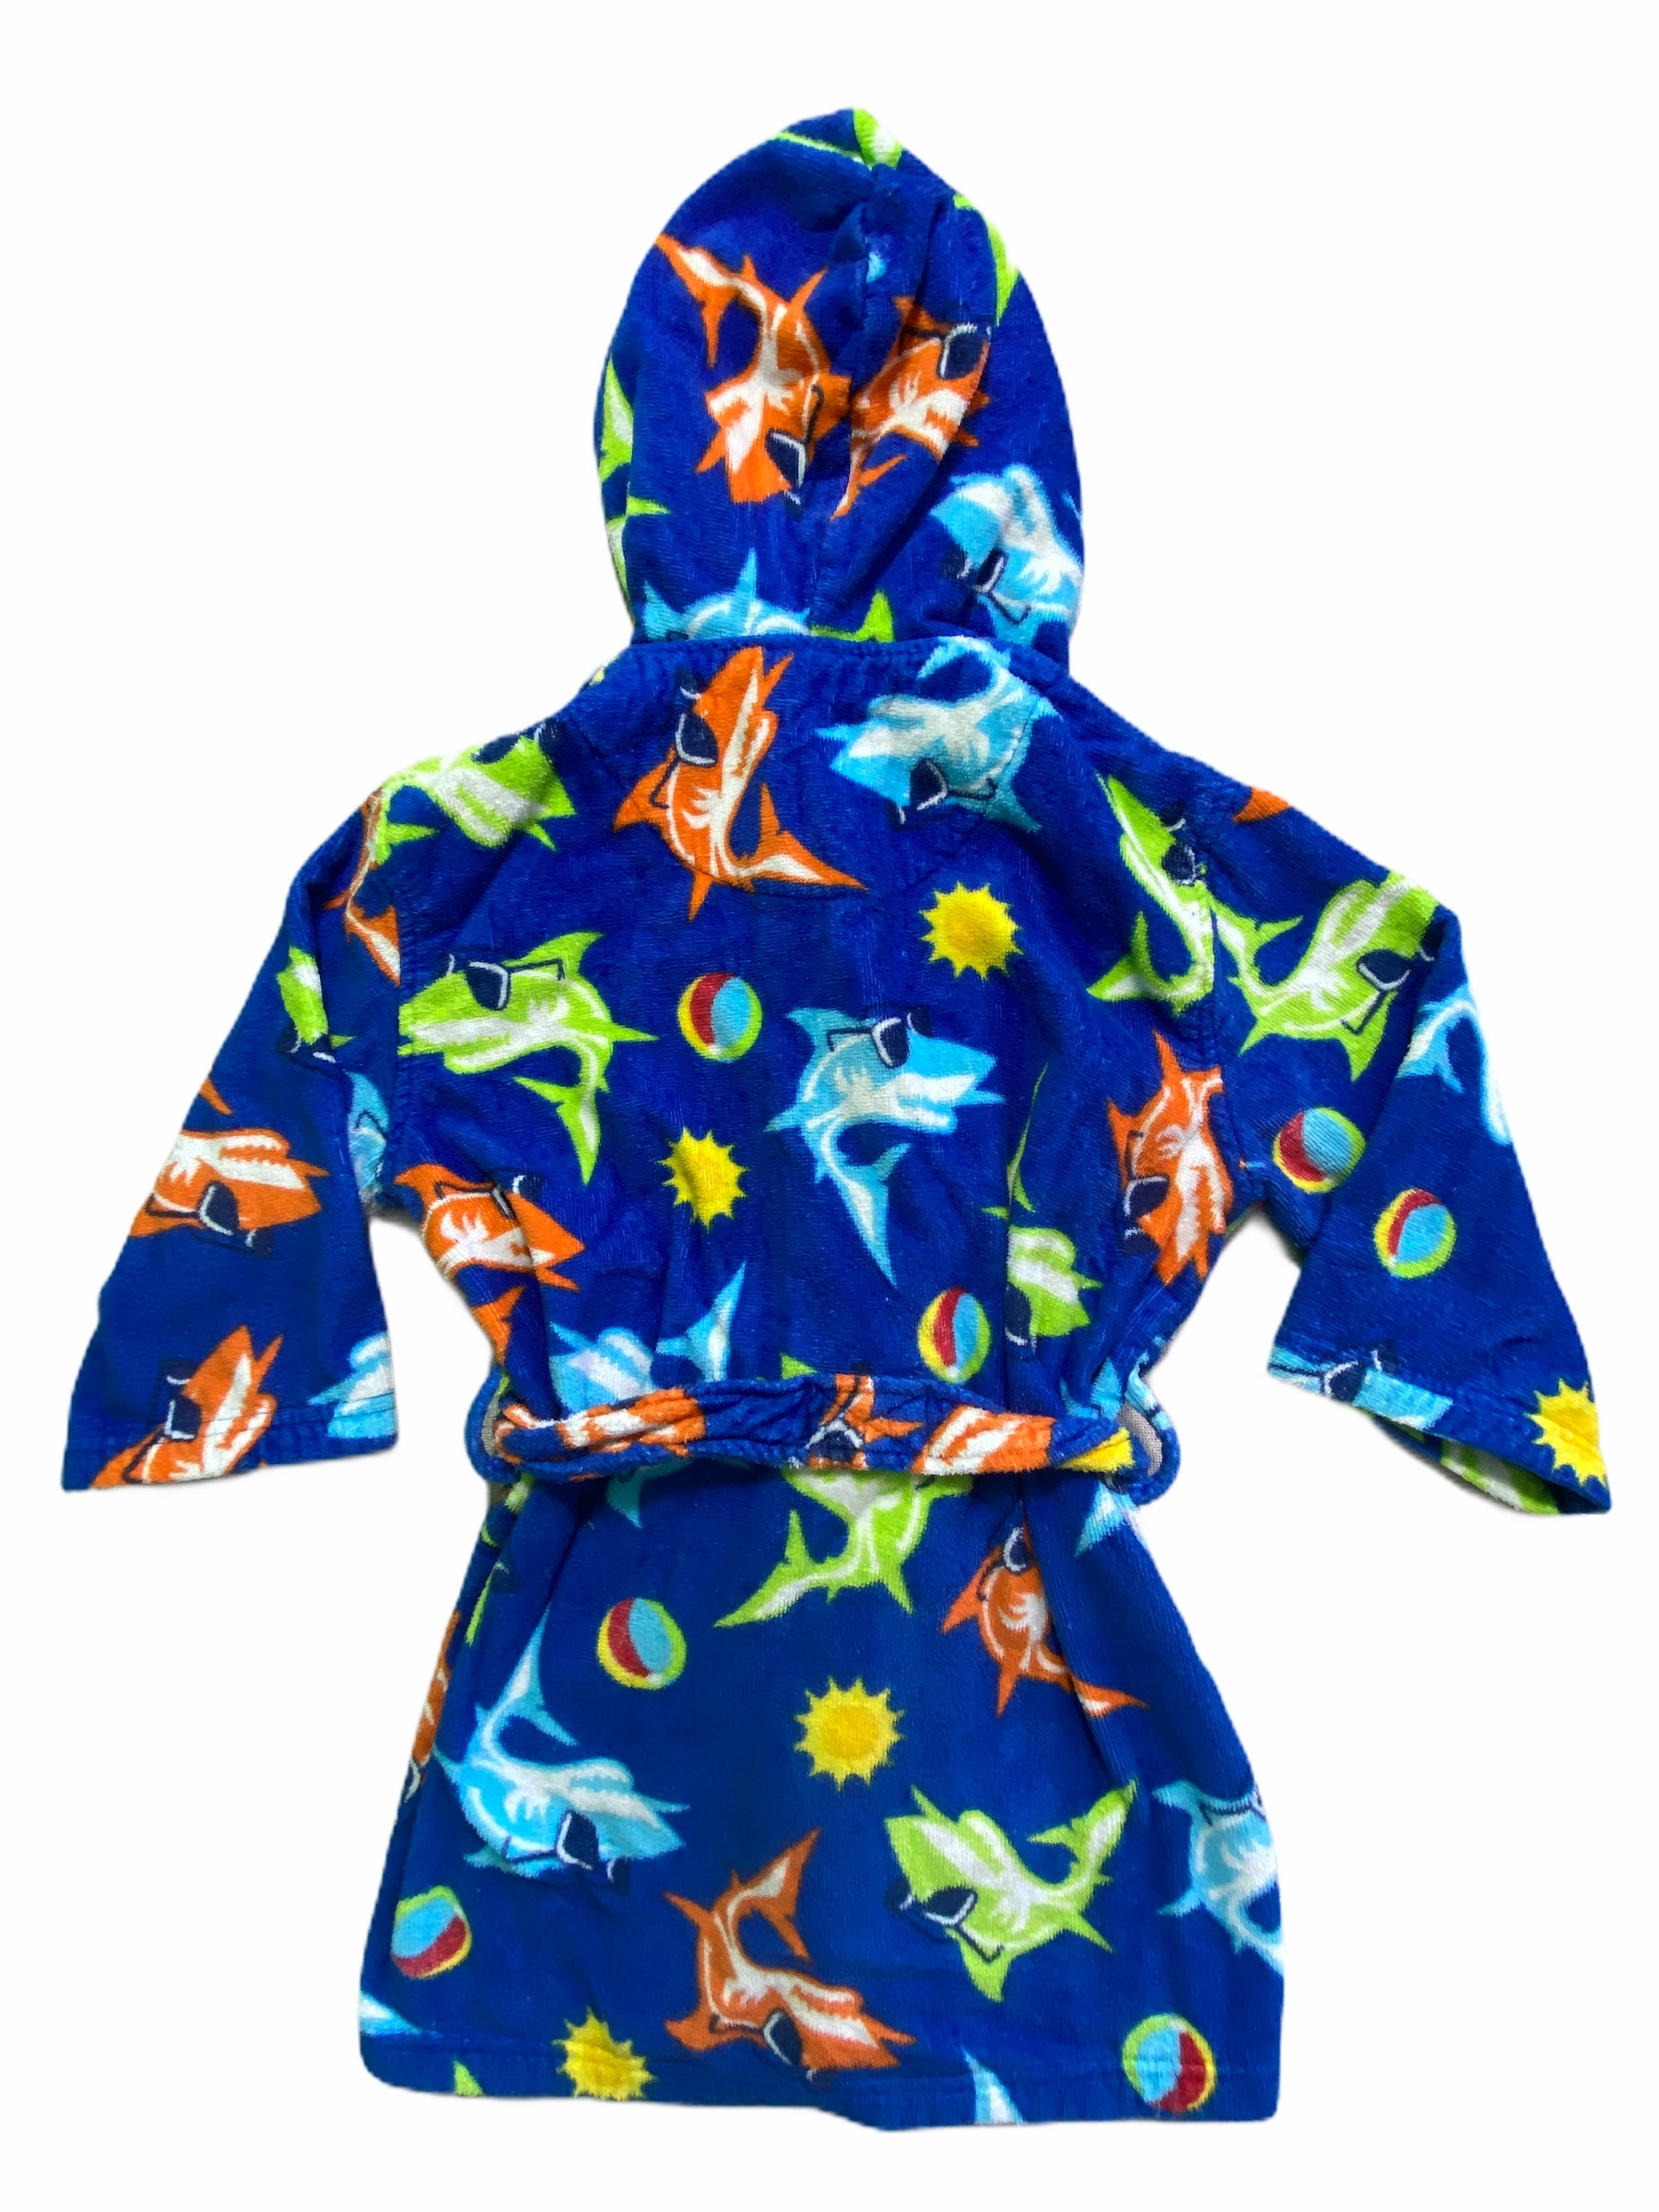 St. Eve Blue Shark Robe (5/6 Boys)